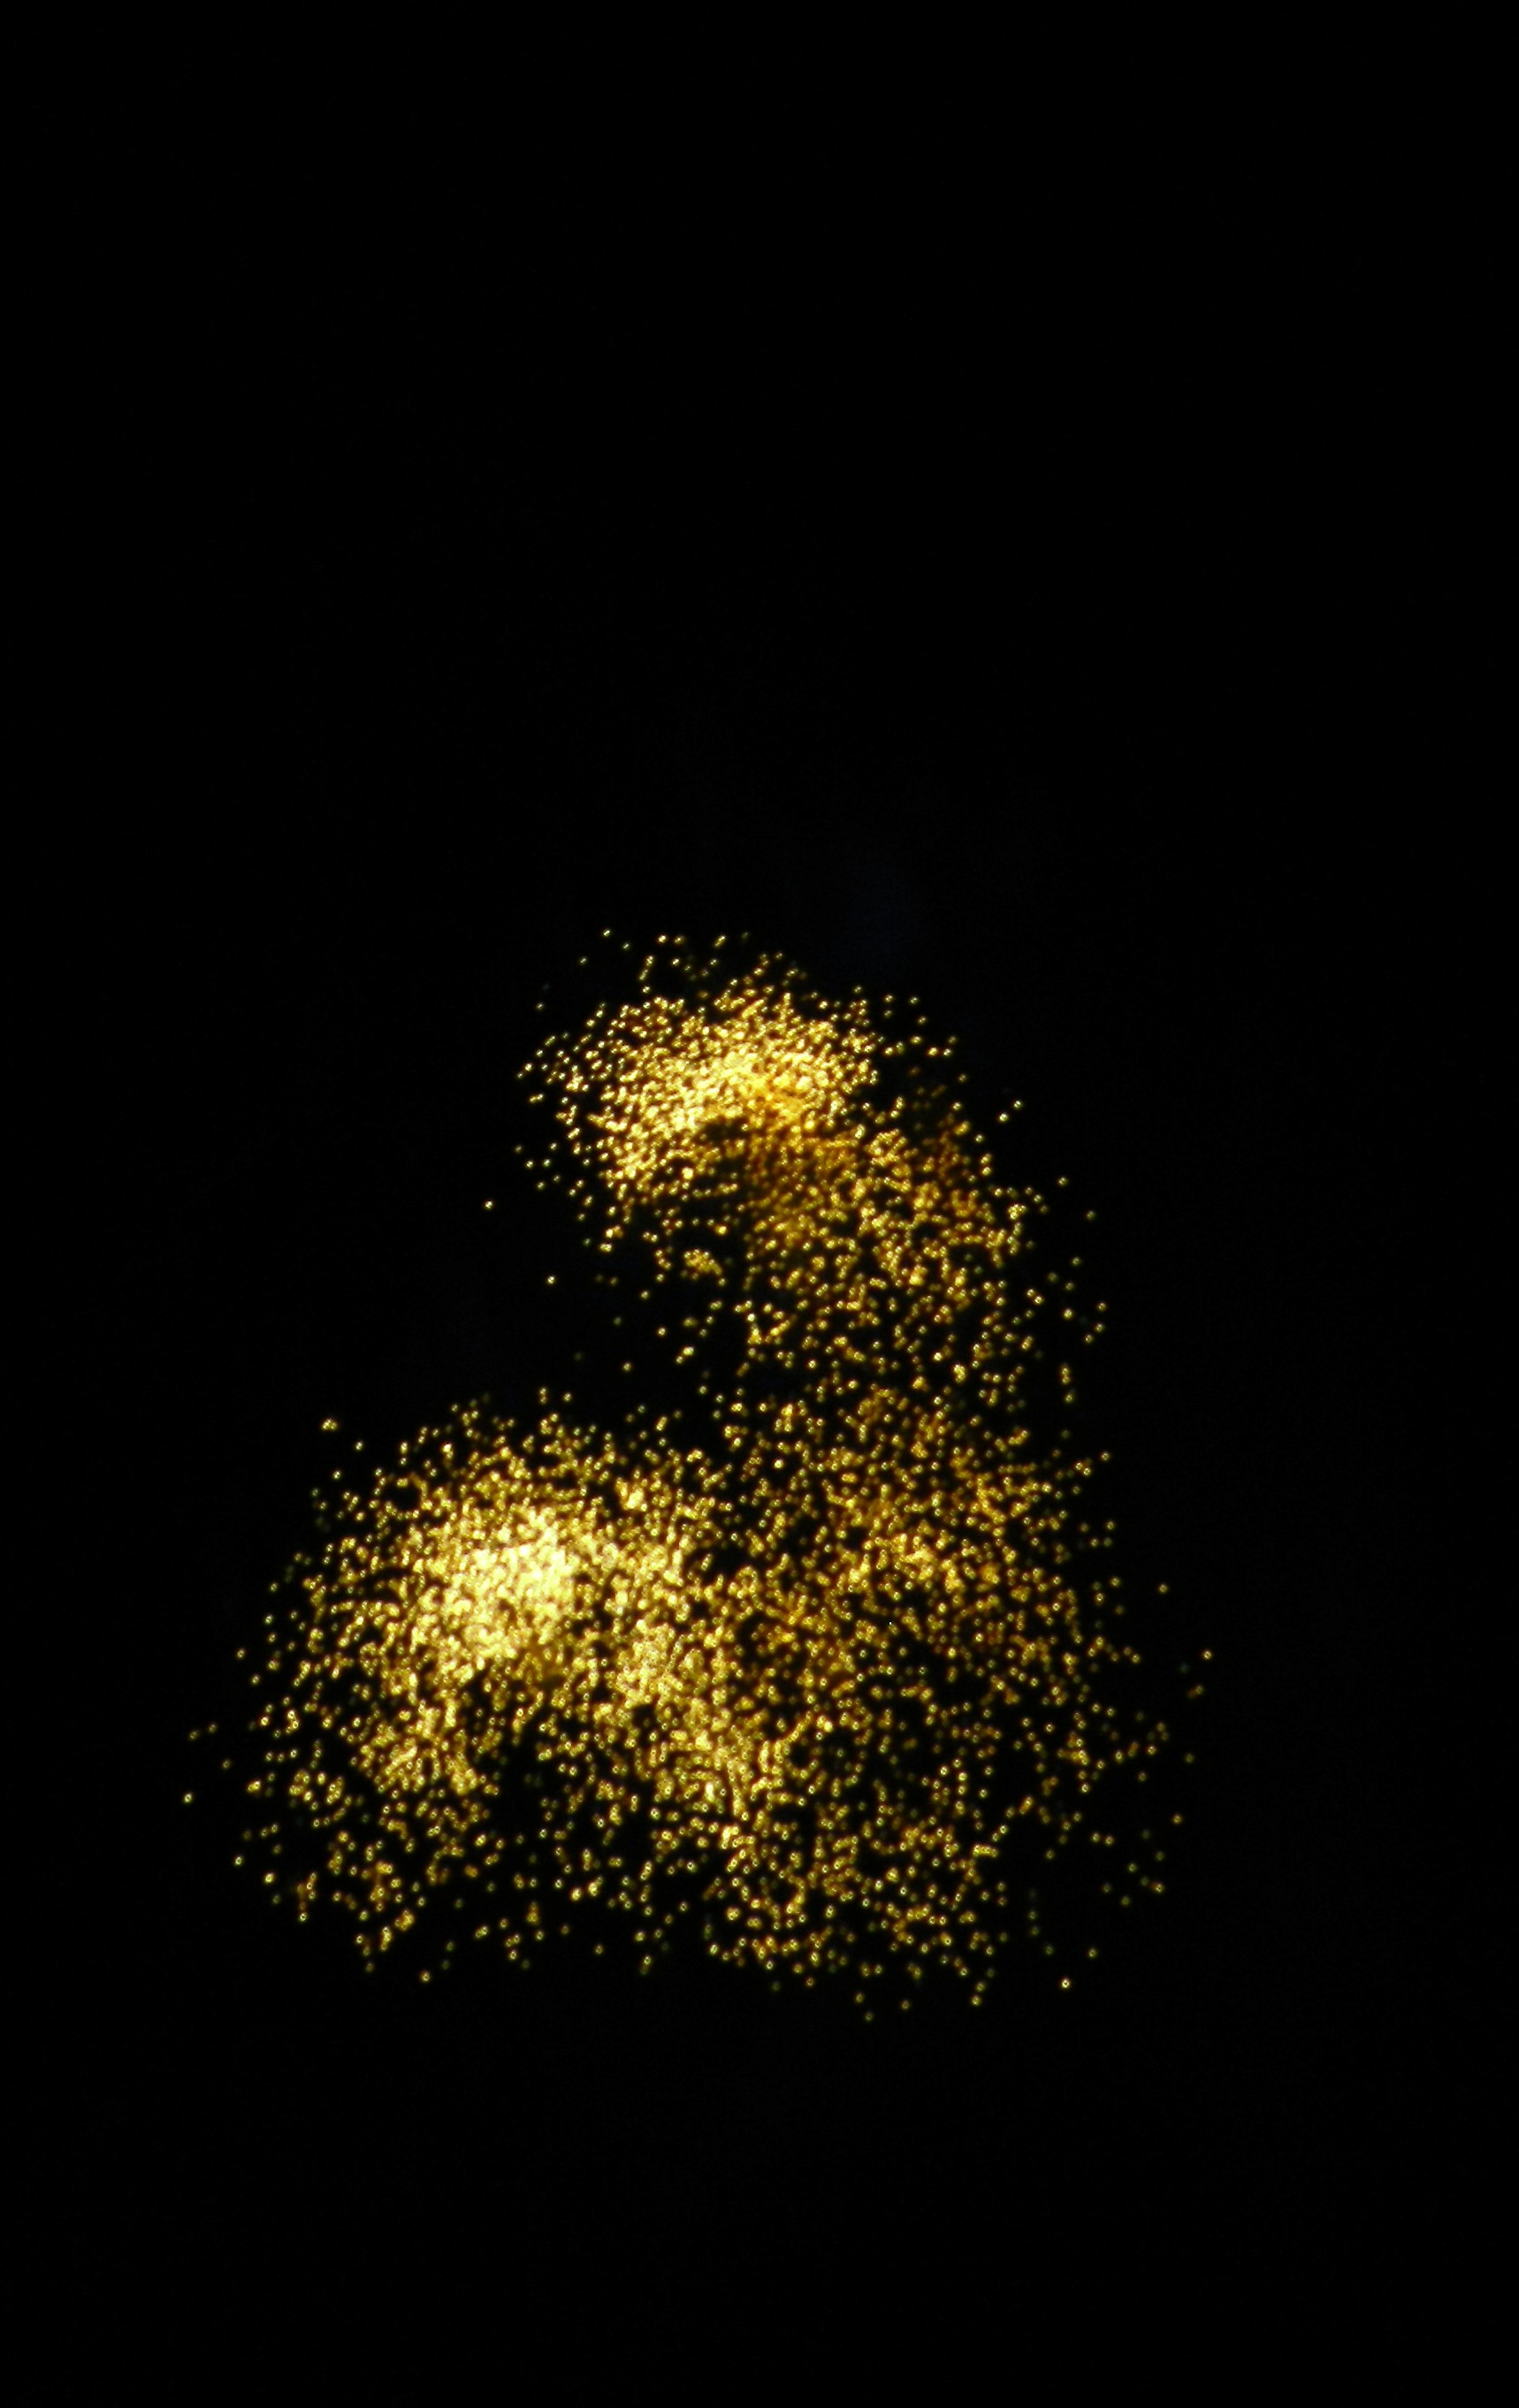 Gold And Black Background 183 ① Download Free Hd Wallpapers